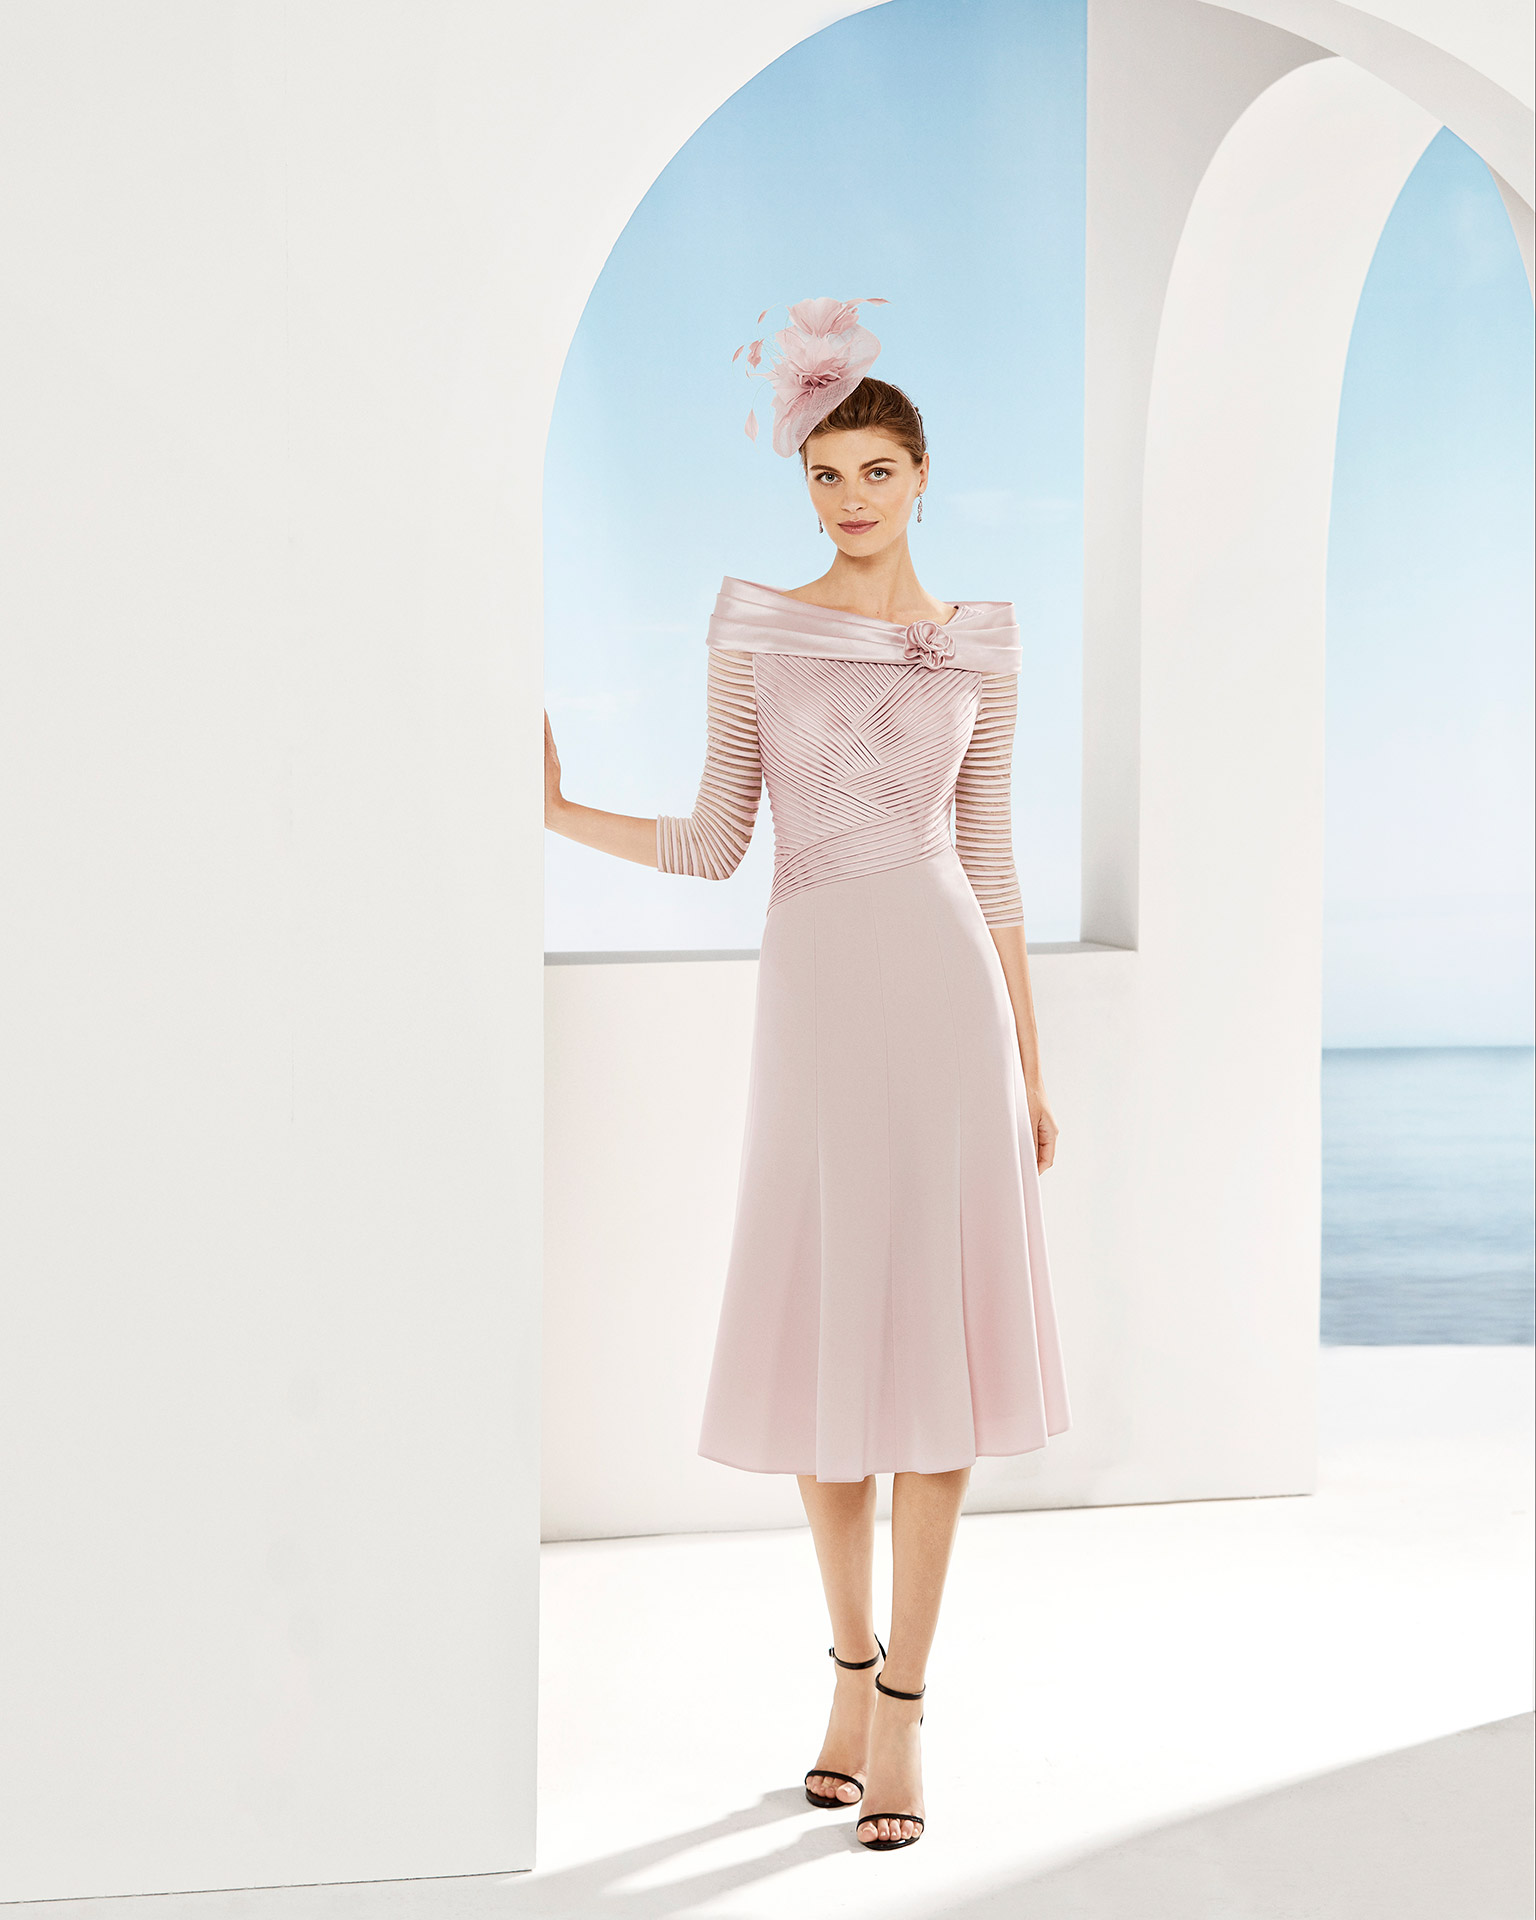 Short cocktail dress with With draped bodice, off-the-shoulder neckline and three-quarter sleeves. Available in beige and pink. 2020 COUTURE CLUB Collection.